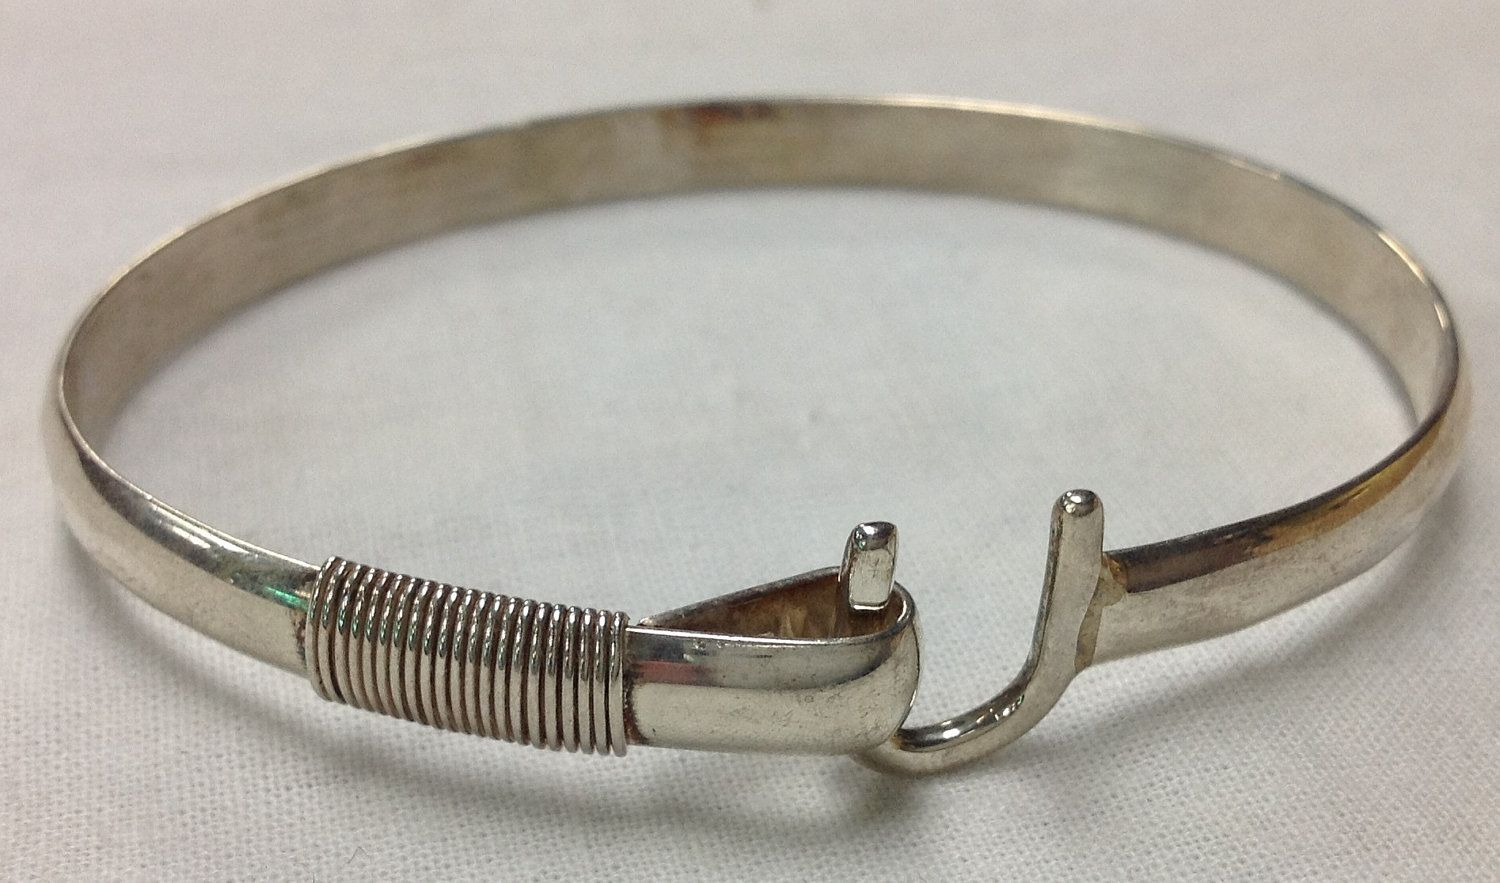 Sonya St Croix Island Carribean Sterling Silver Hammered Cuff Bangle Bracelet With Cool Hook Closure 68 00 Via Etsy